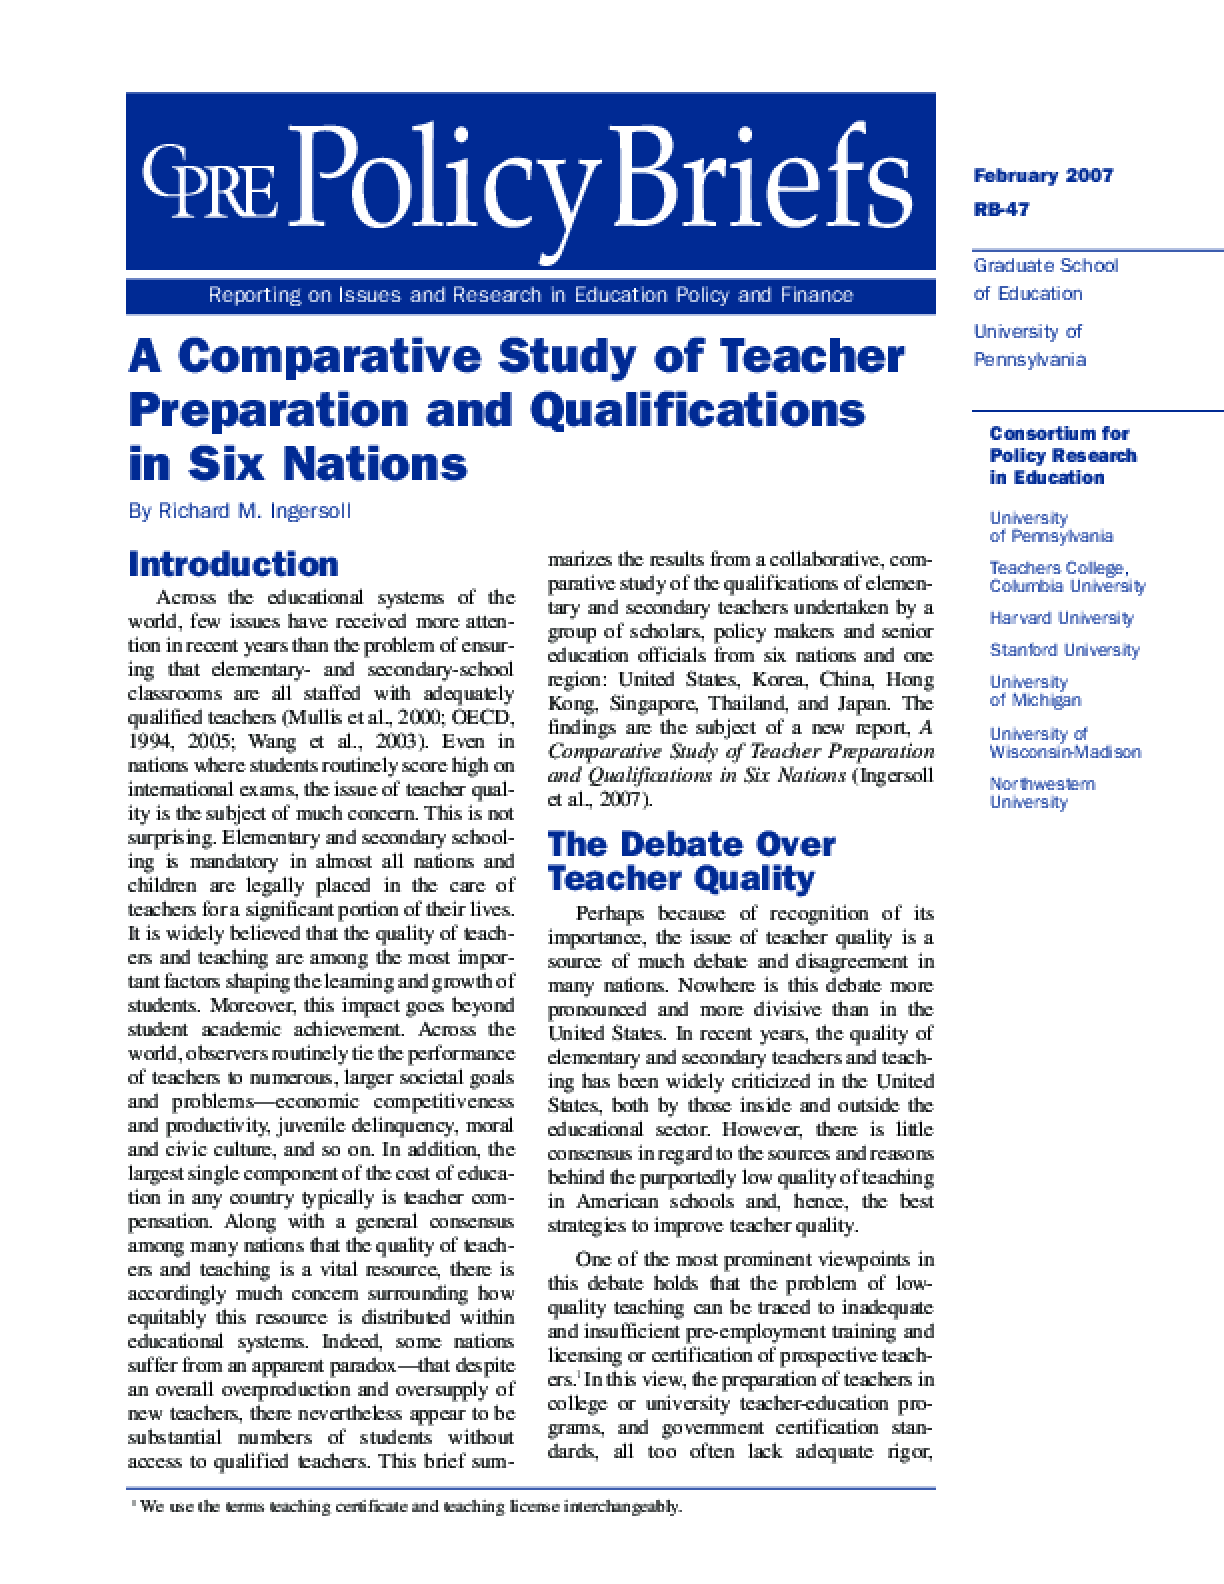 A Comparative Study of Teacher Preparation and Qualifications in Six Nations (Policy Brief)